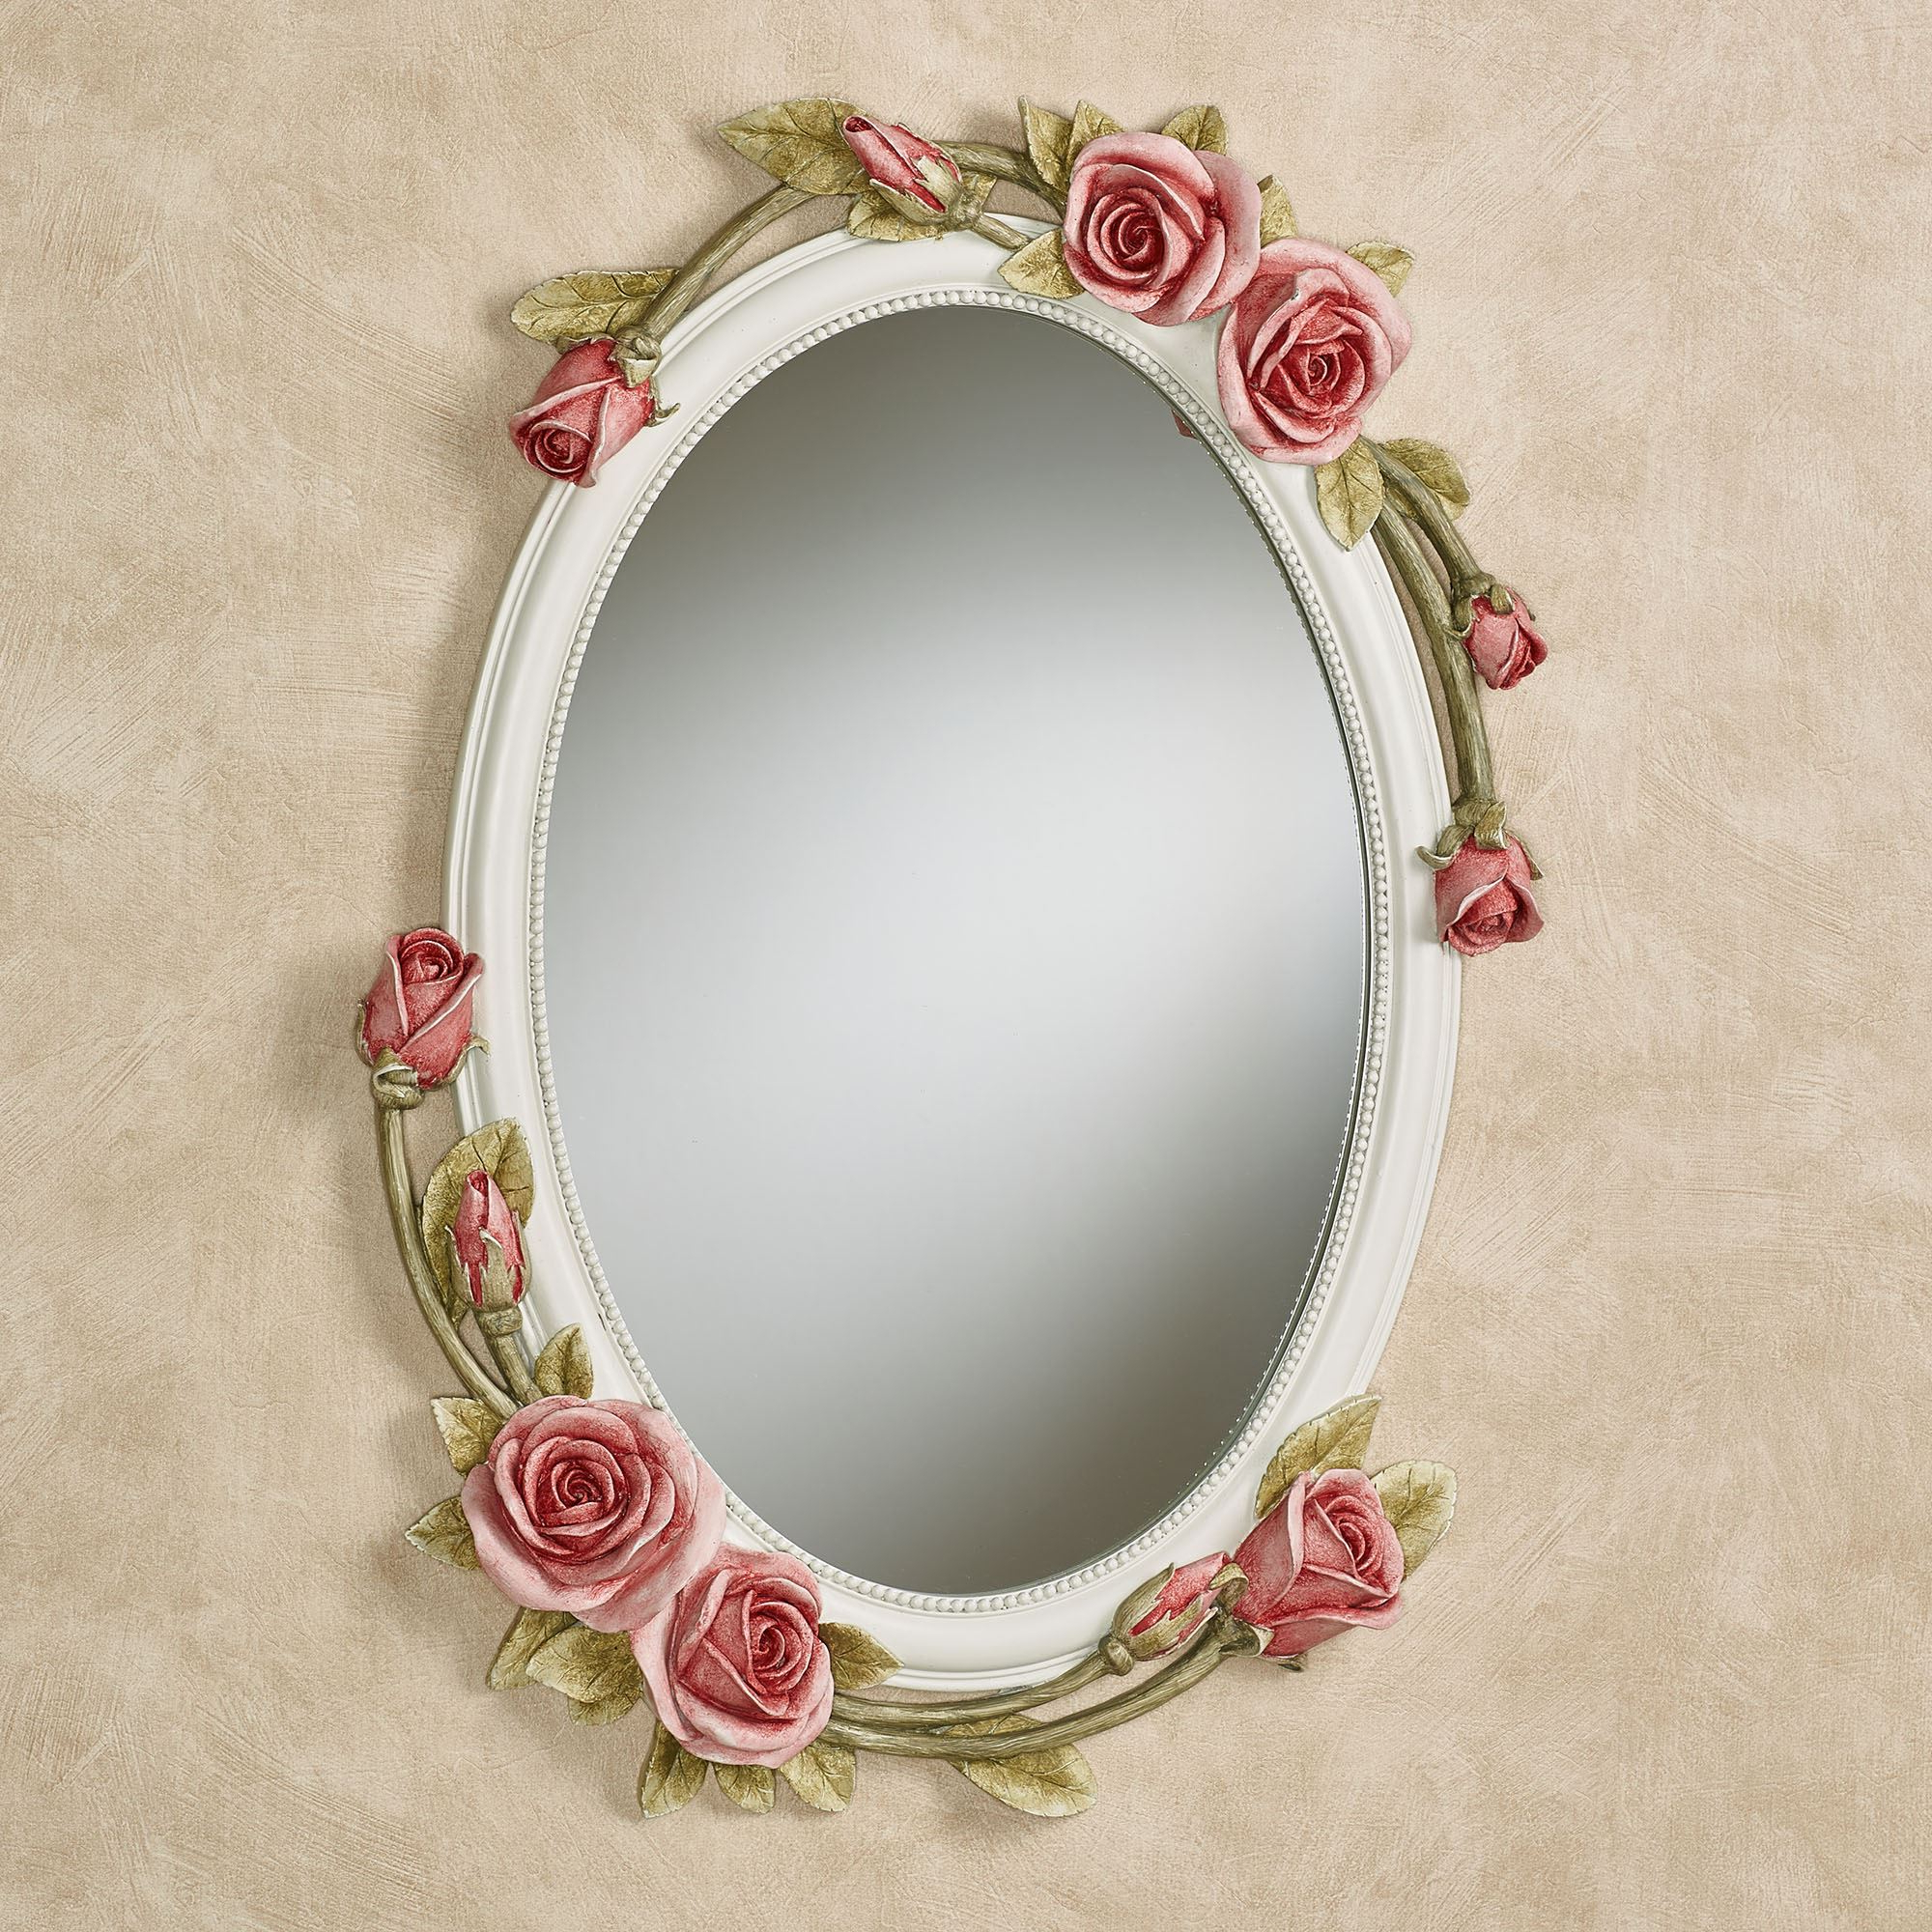 Flower Wall Mirrors With Best And Newest Rose Melody Rose Floral Oval Wall Mirror (View 11 of 20)